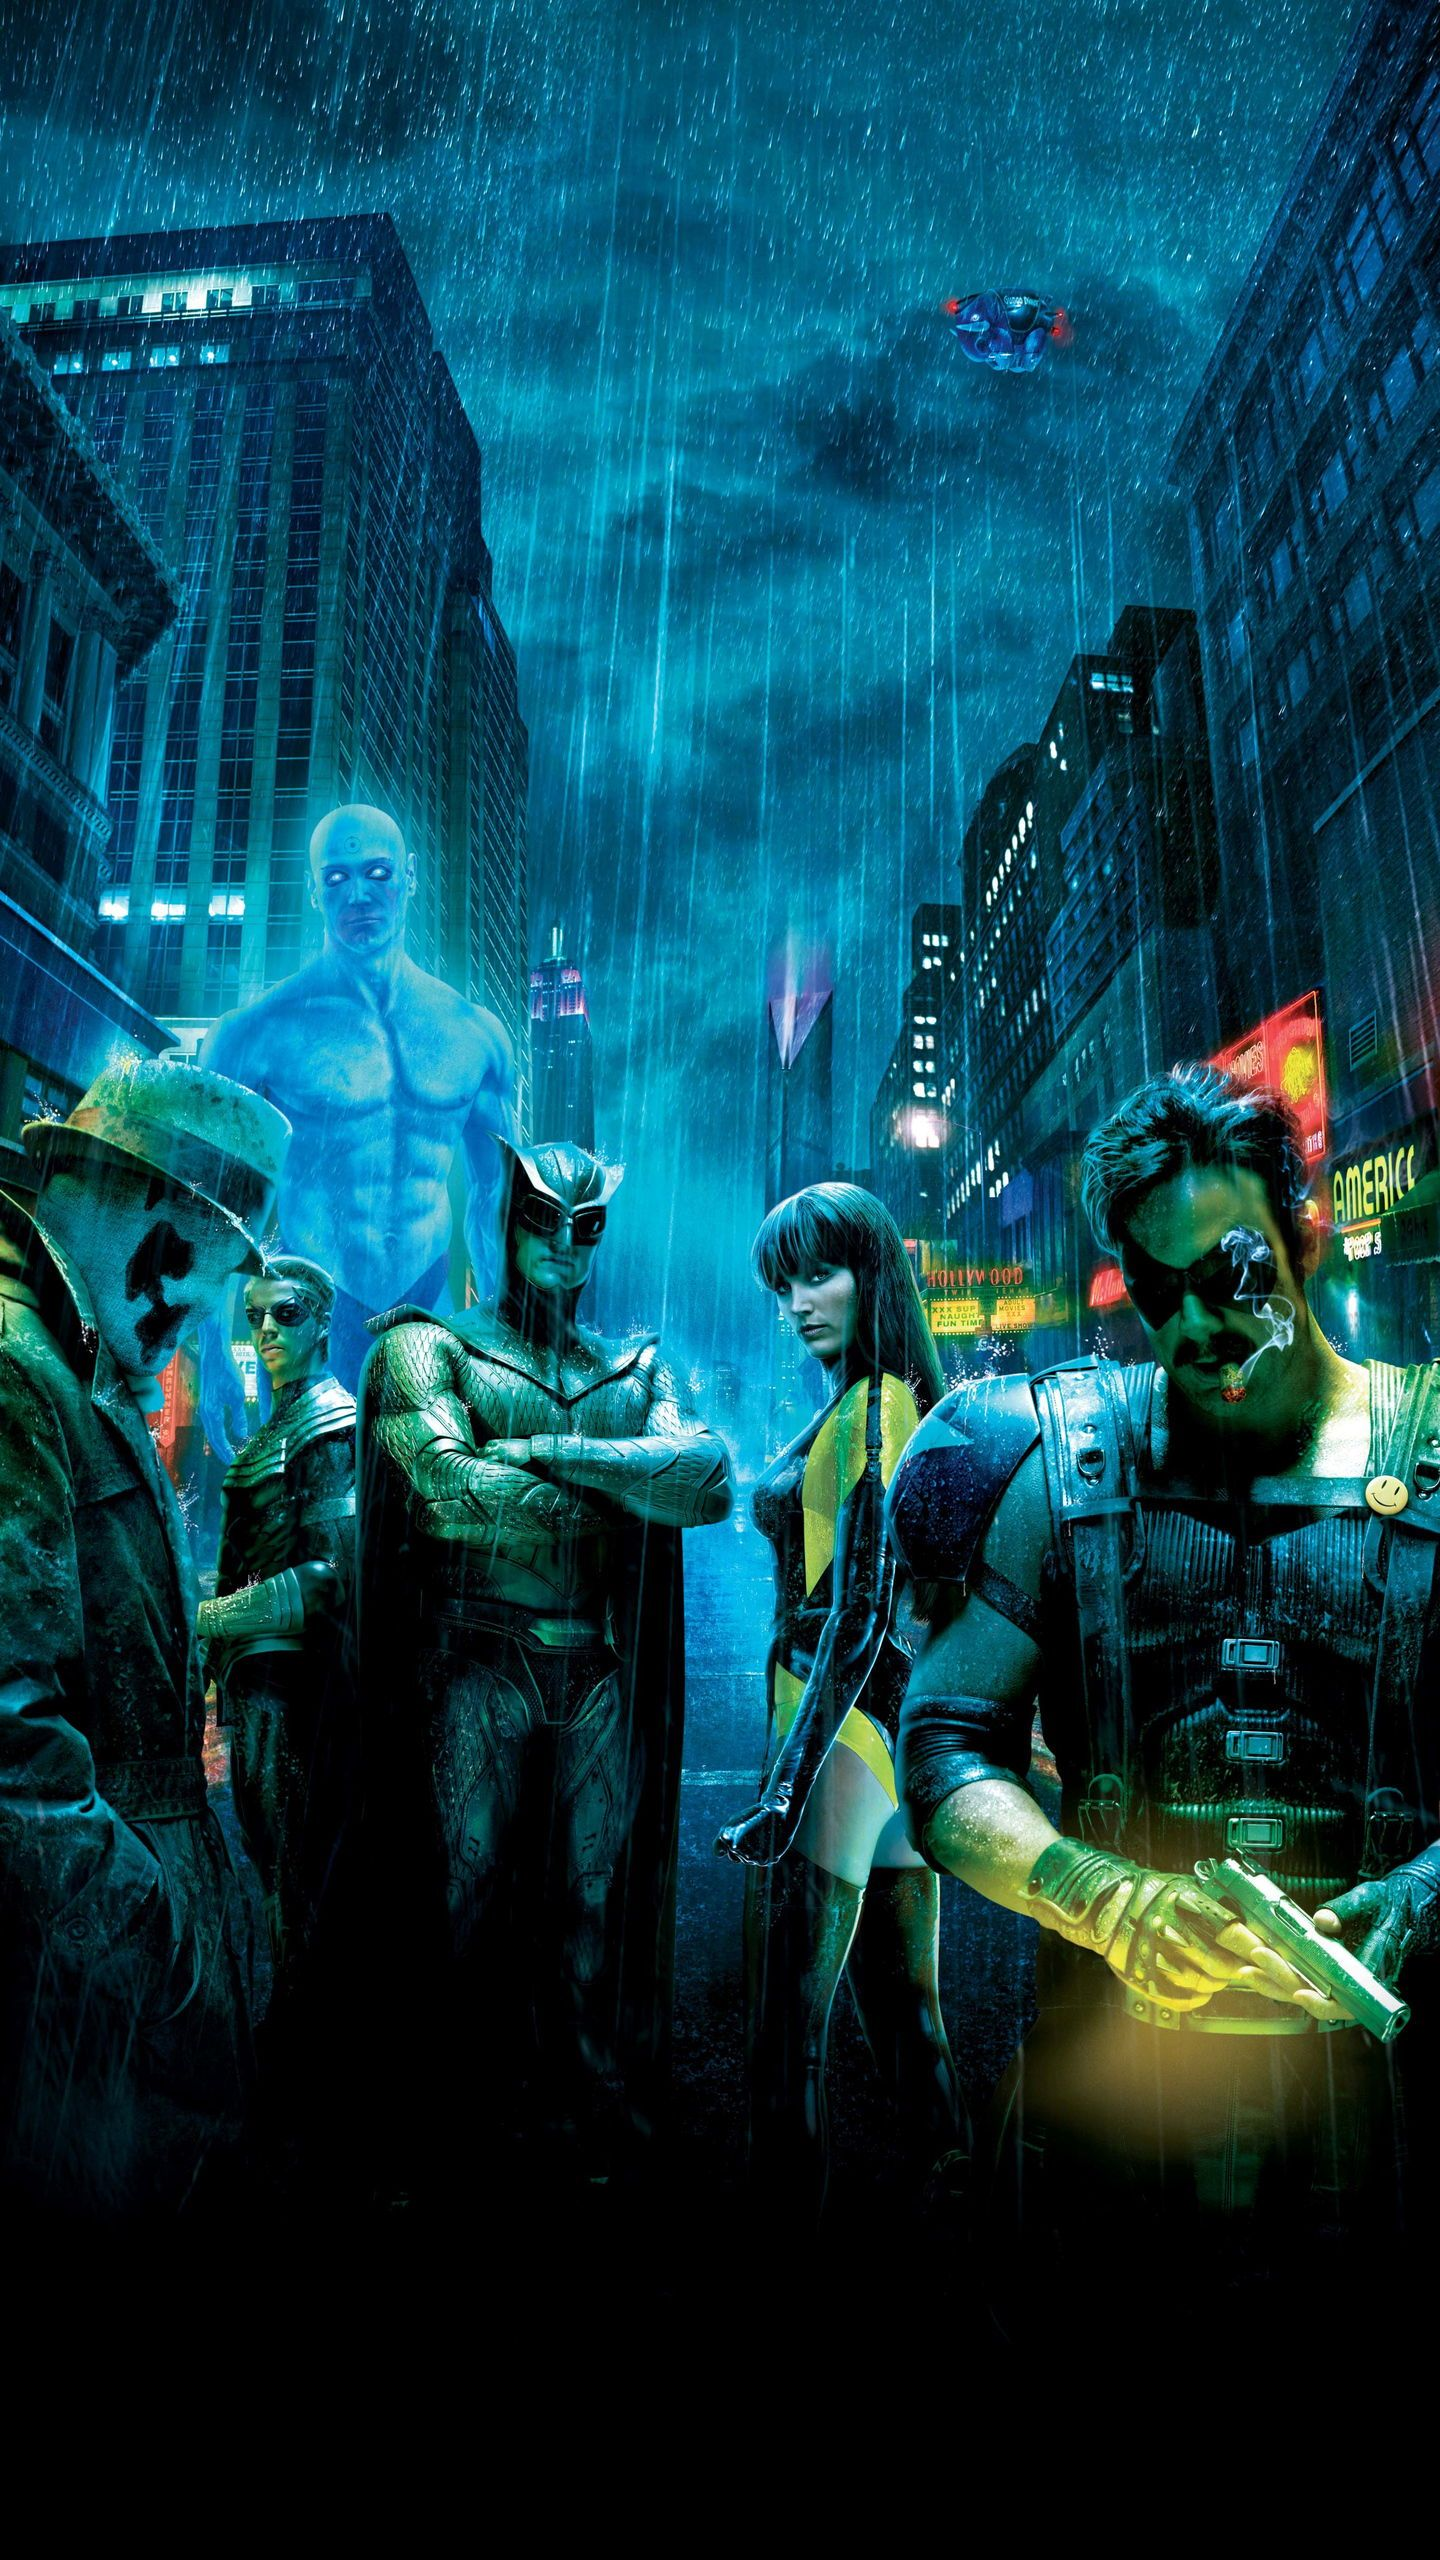 Download Hd Wallpapers Watchmen Hd Wallpaper Movie Wallpapers